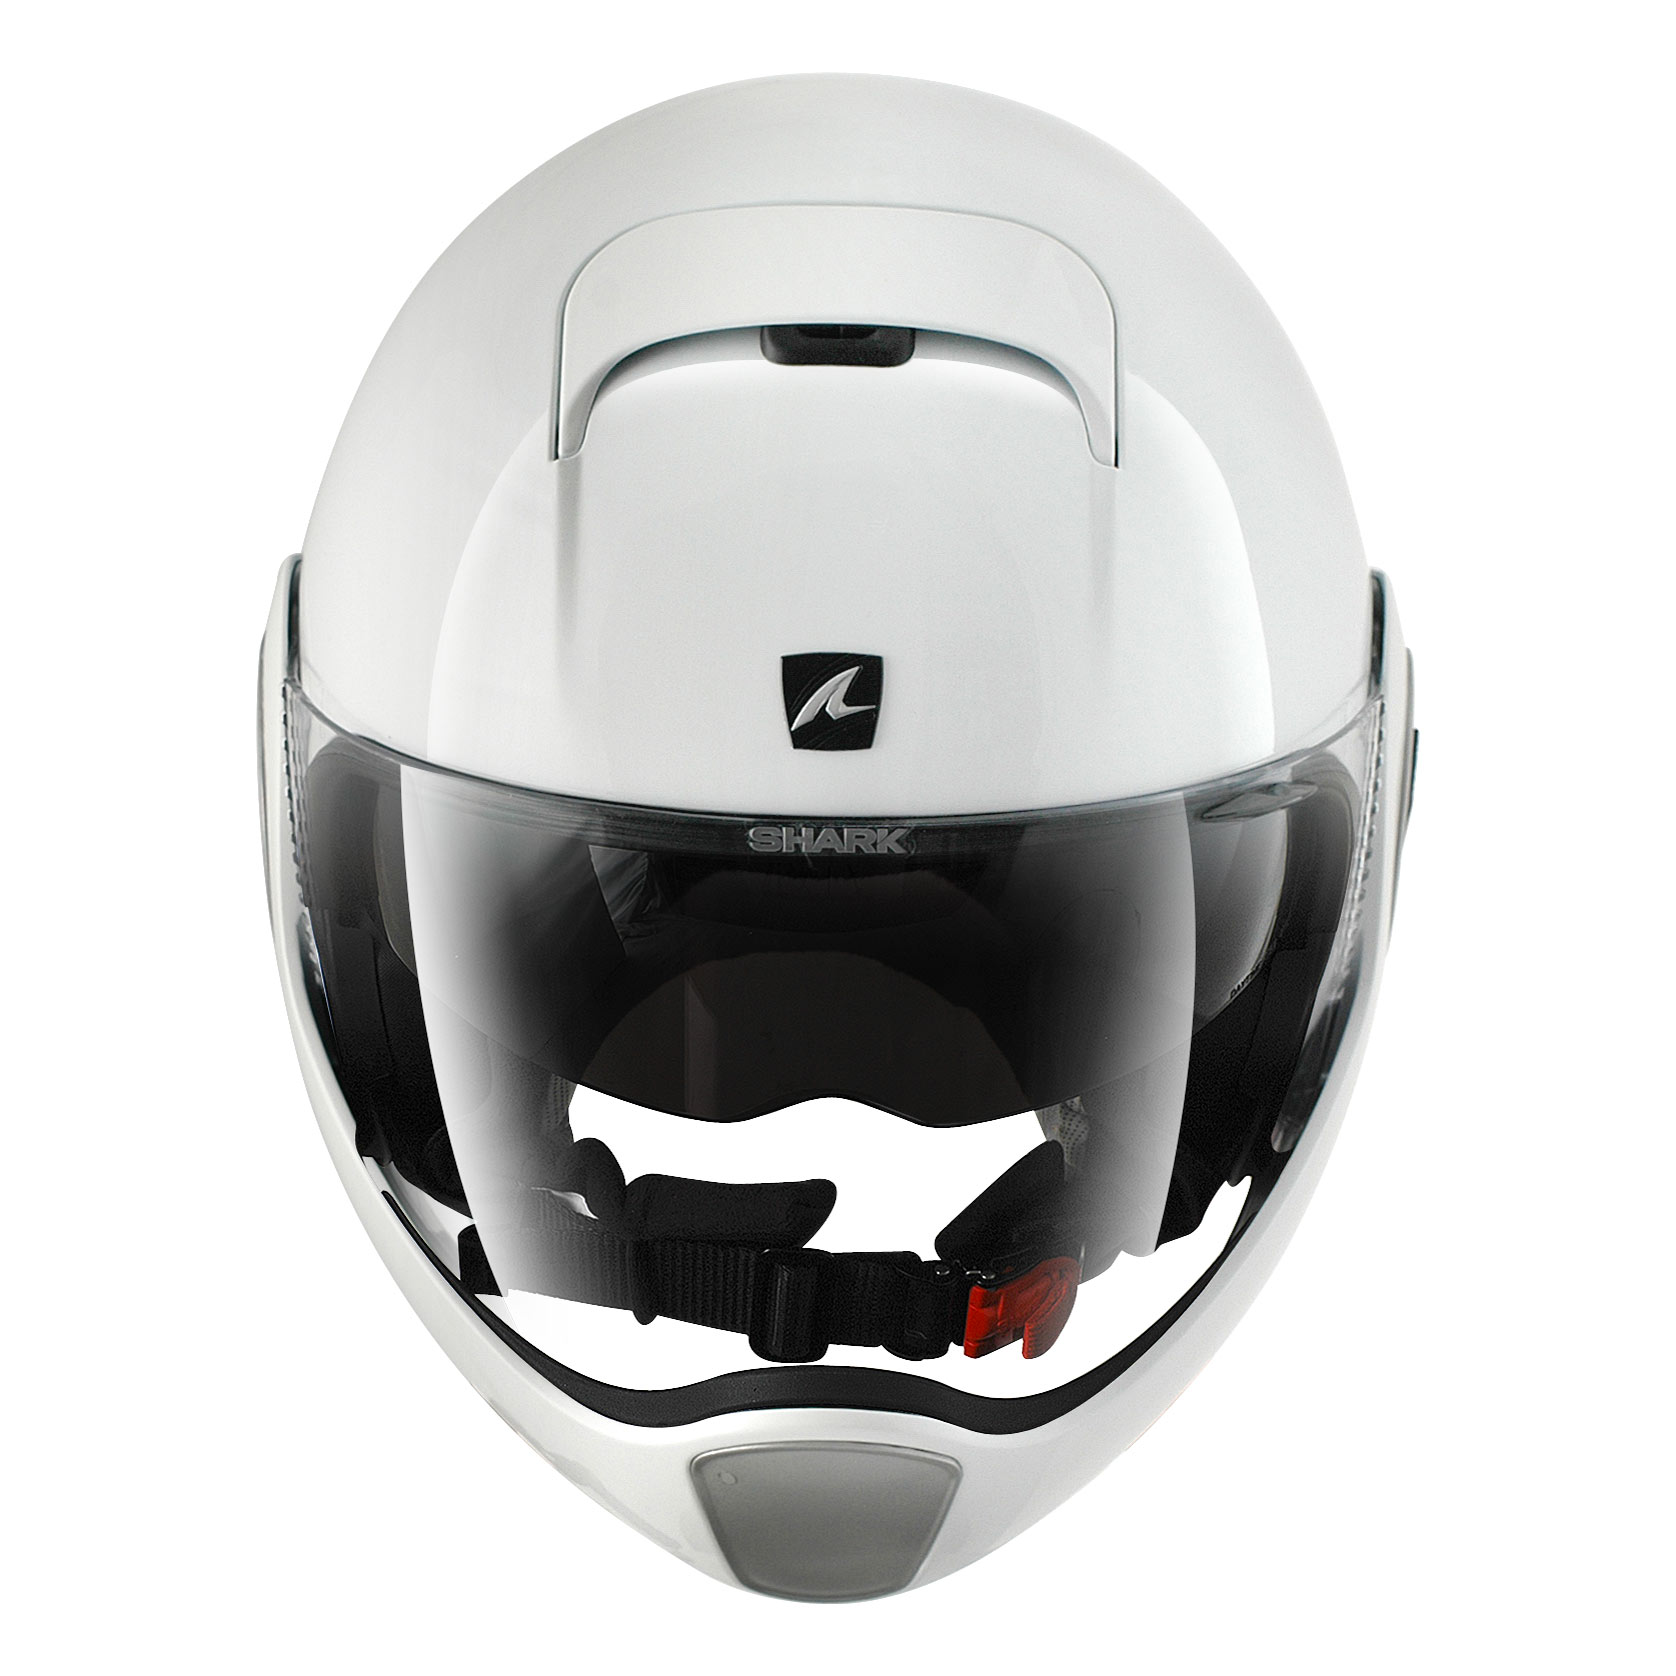 casque int gral shark vantime blanc japauto accessoires equipement pilote pour moto et scooter. Black Bedroom Furniture Sets. Home Design Ideas